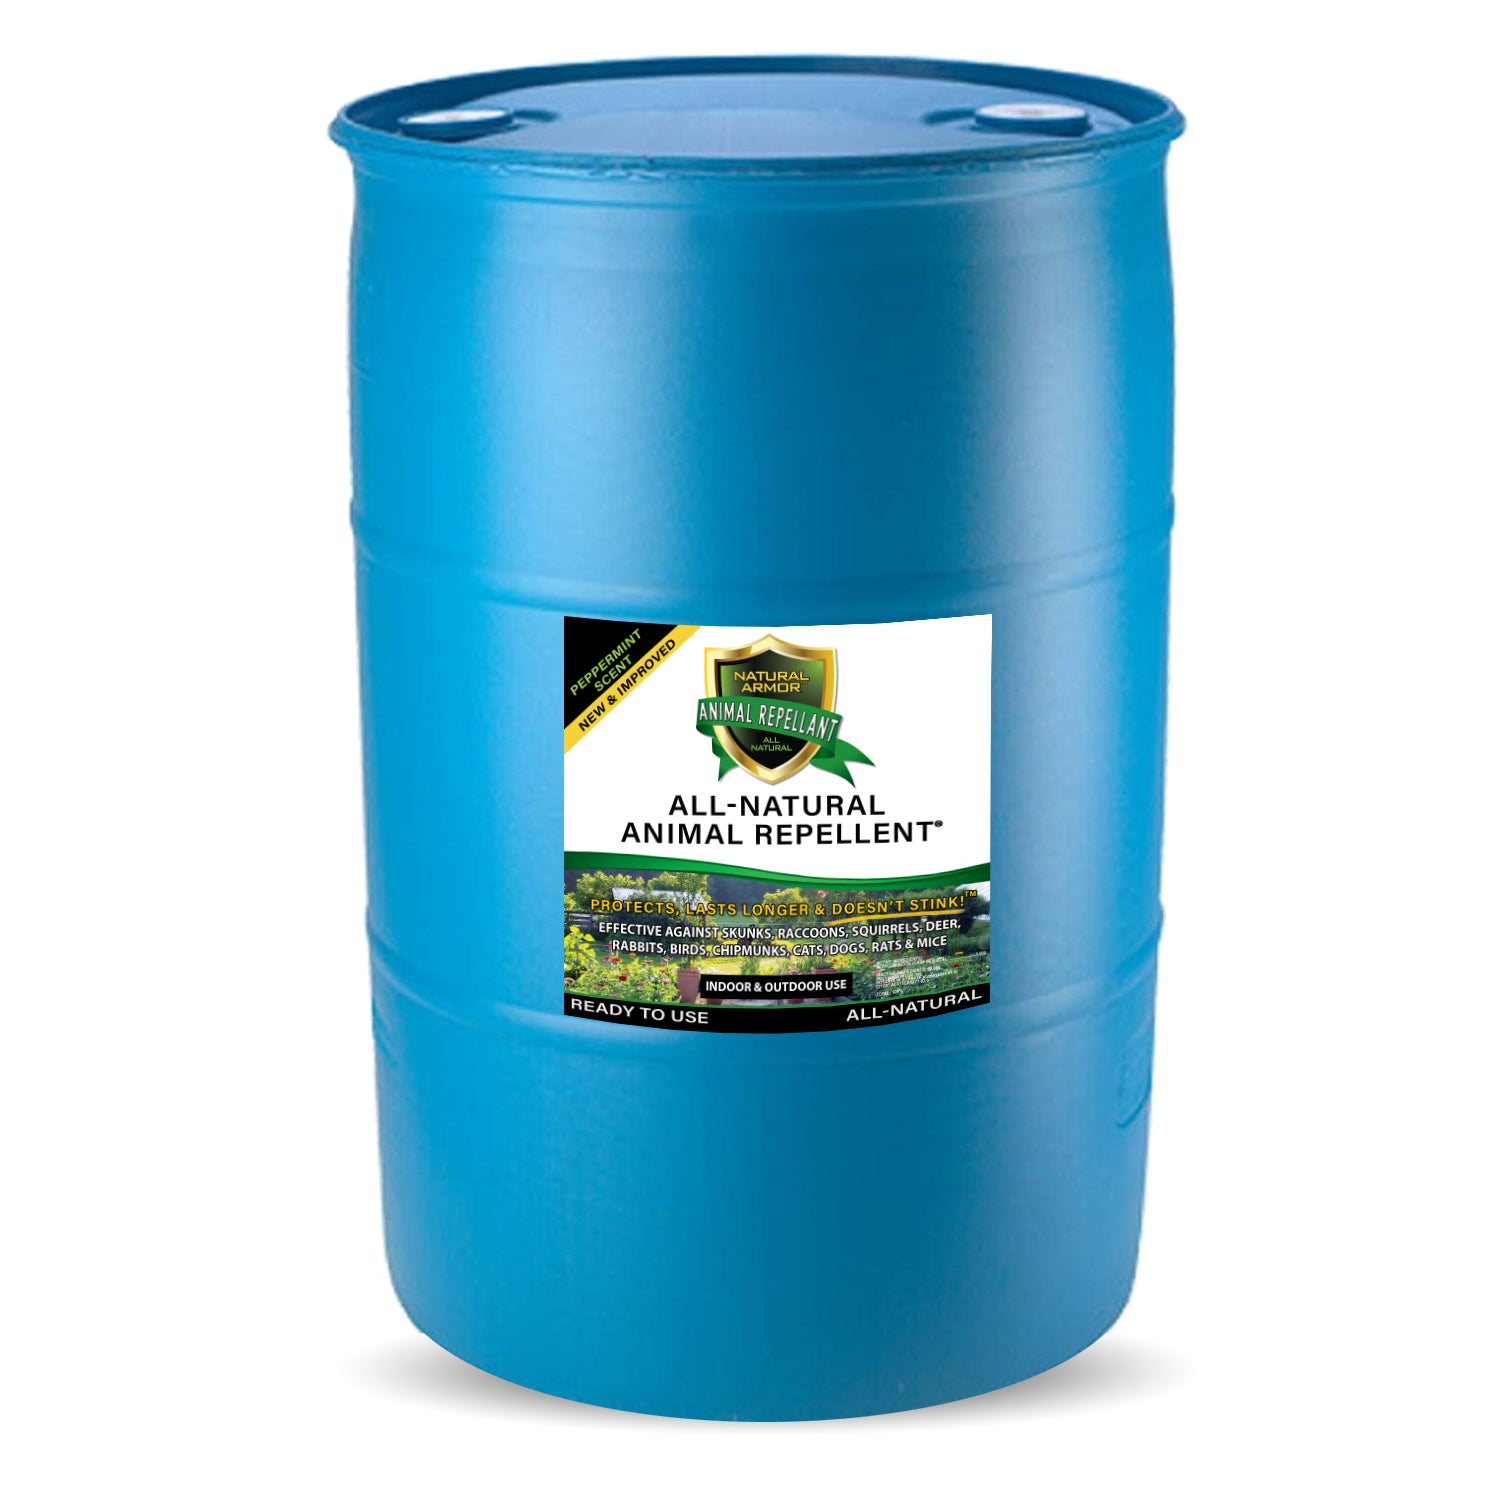 Animal Repellent –– Peppermint Scent (1) 55 GALLON DRUM